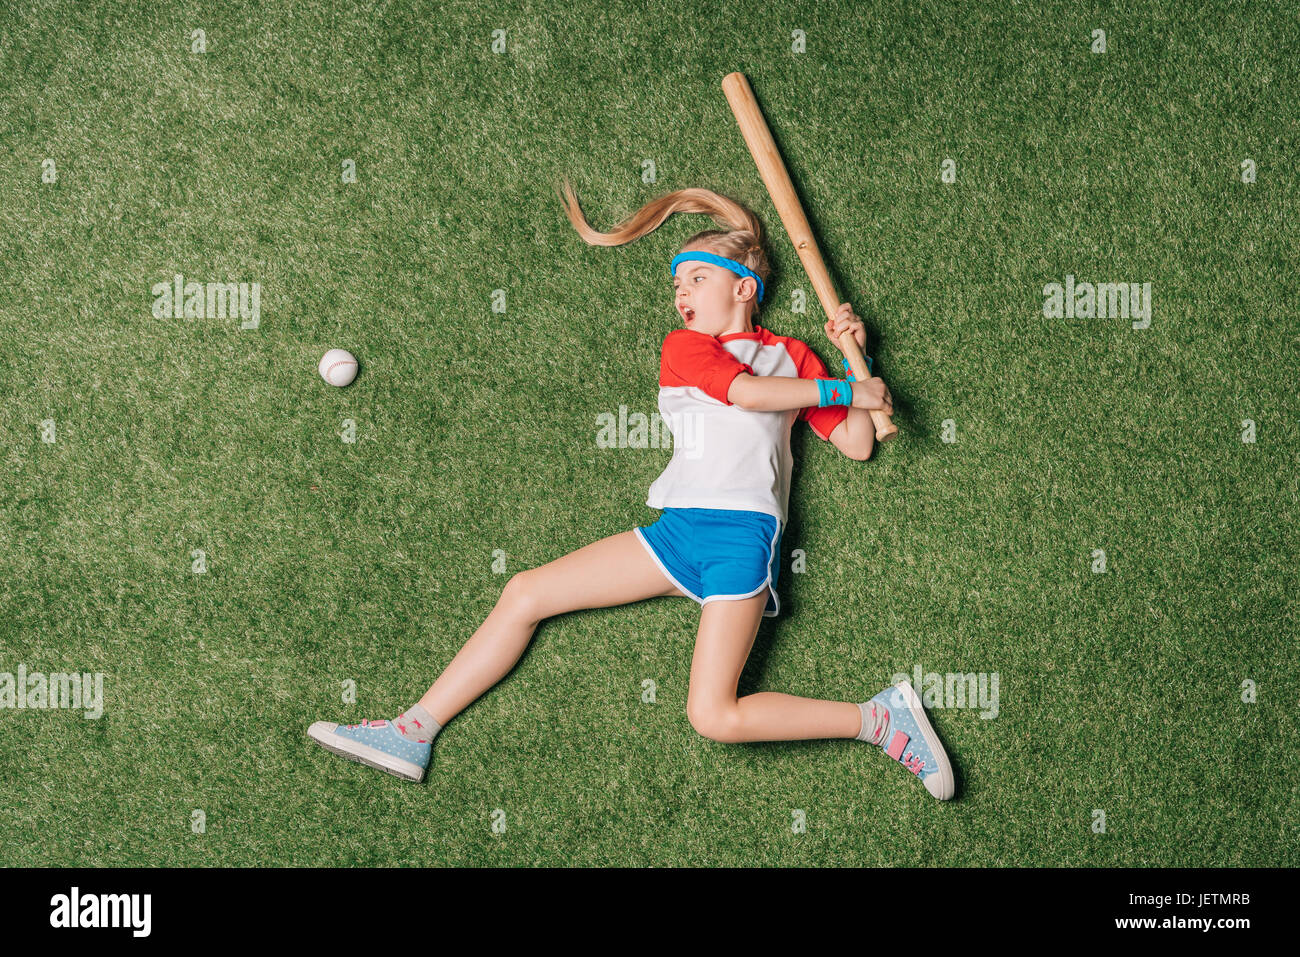 top view of little girl pretending playing baseball on grass, athletics children concept - Stock Image